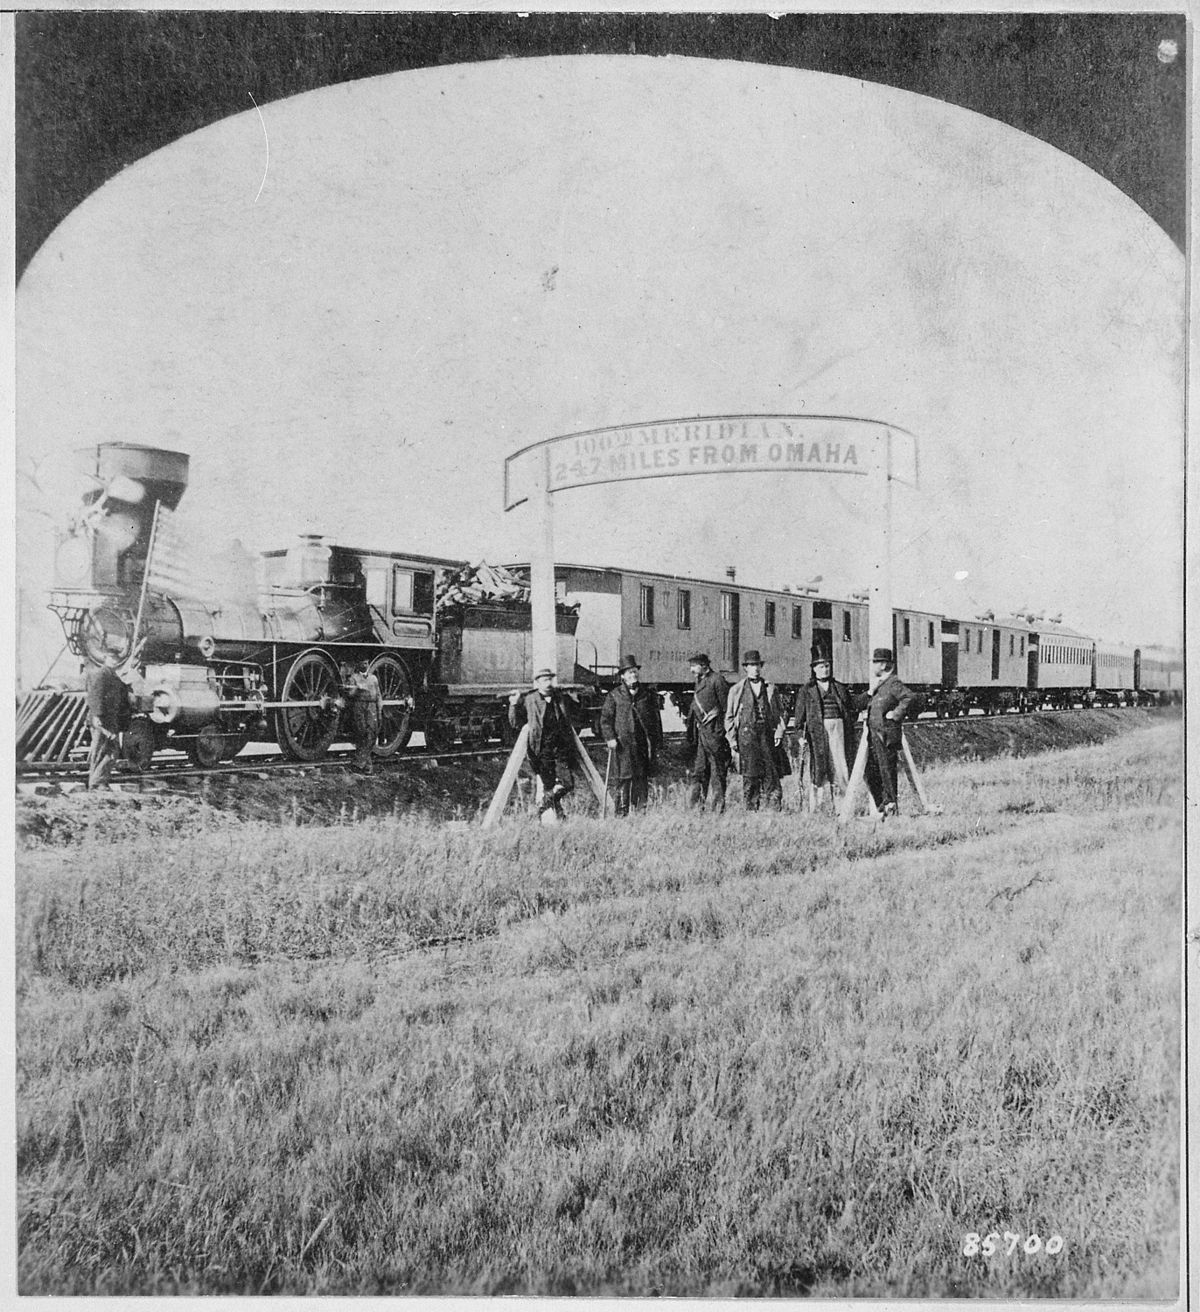 History of the Union Pacific Railroad - Wikipedia